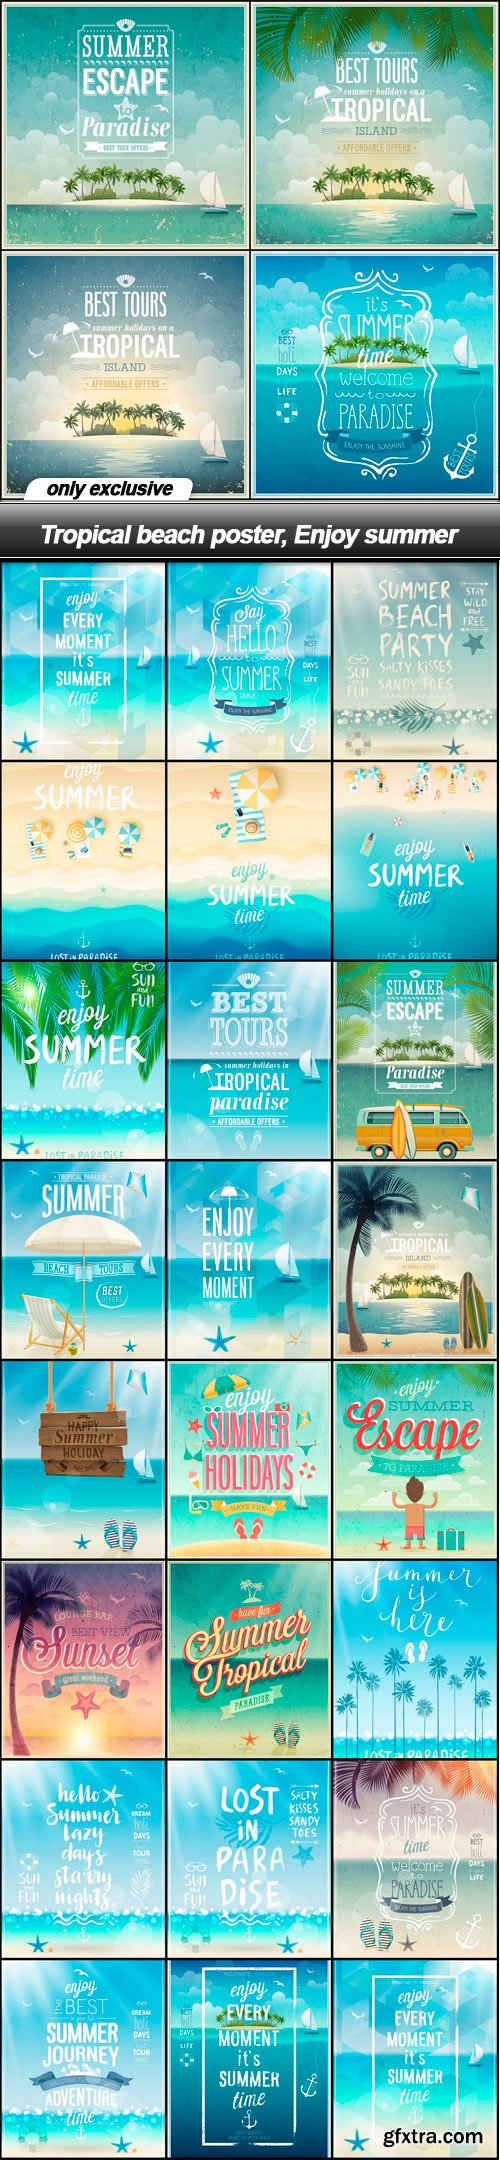 Tropical beach poster, Enjoy summer - 27 EPS